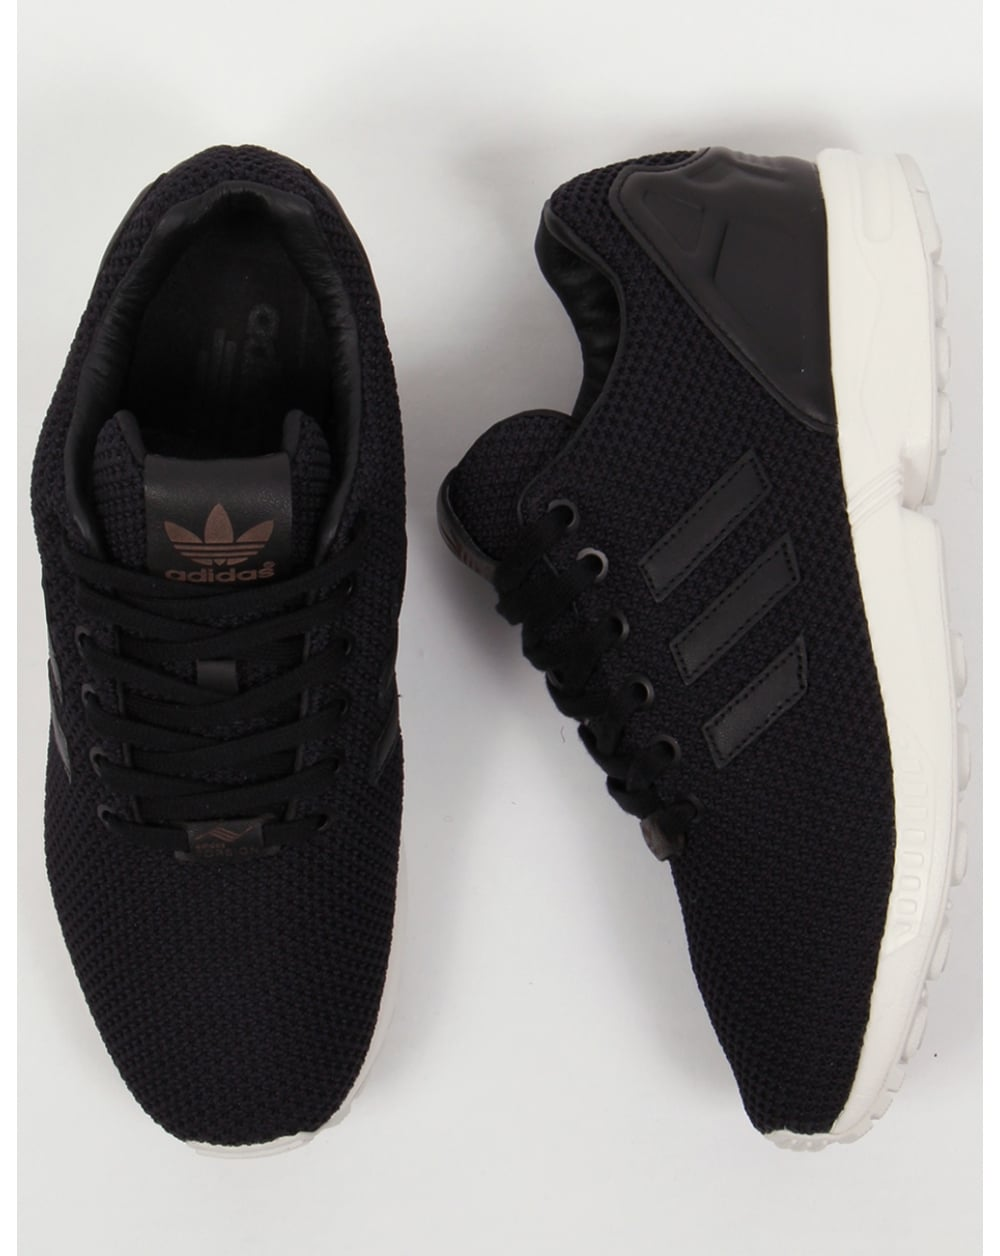 5d39732836b13 Adidas Zx Flux Trainers Black black white